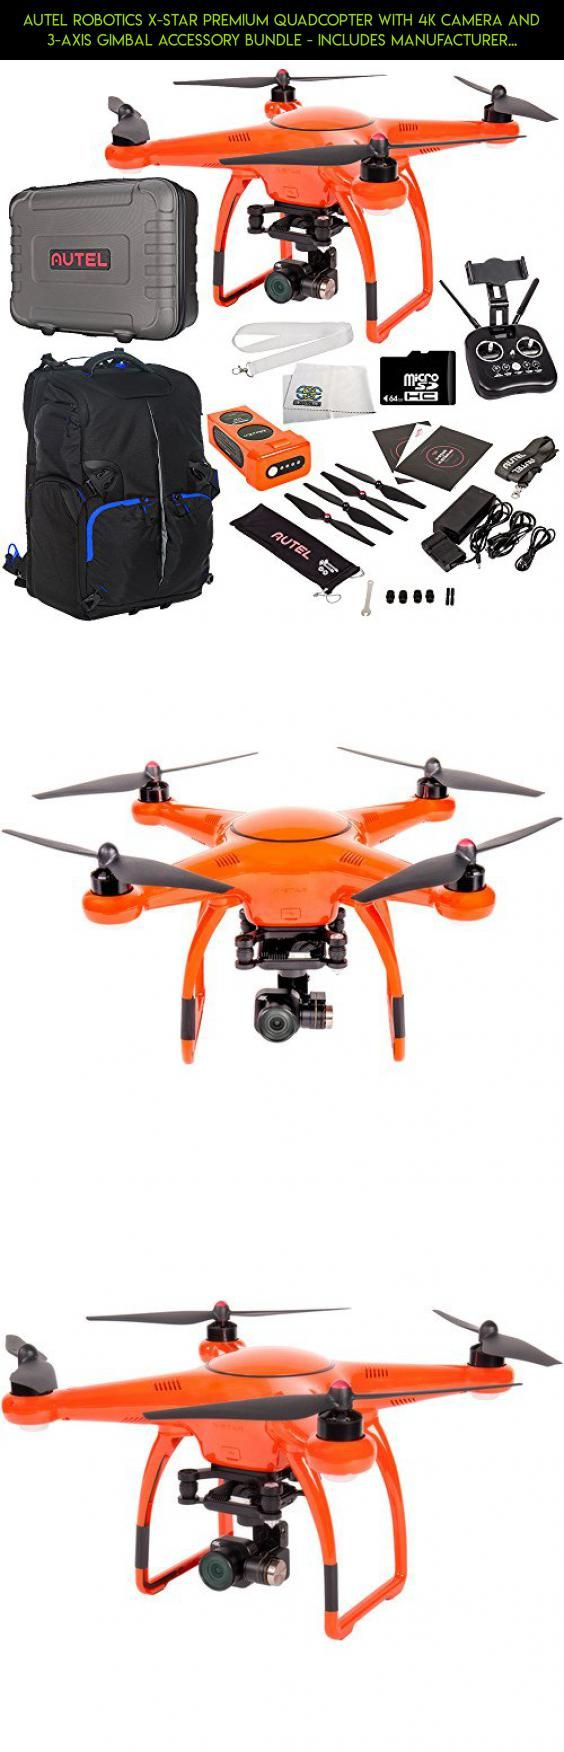 Autel Robotics X Star Premium Quadcopter With 4k Camera And 3 Axis Gimbal Accessory Bundle Includes Manufacturer Accessories 6 Diy Drone Drone Drone Racing